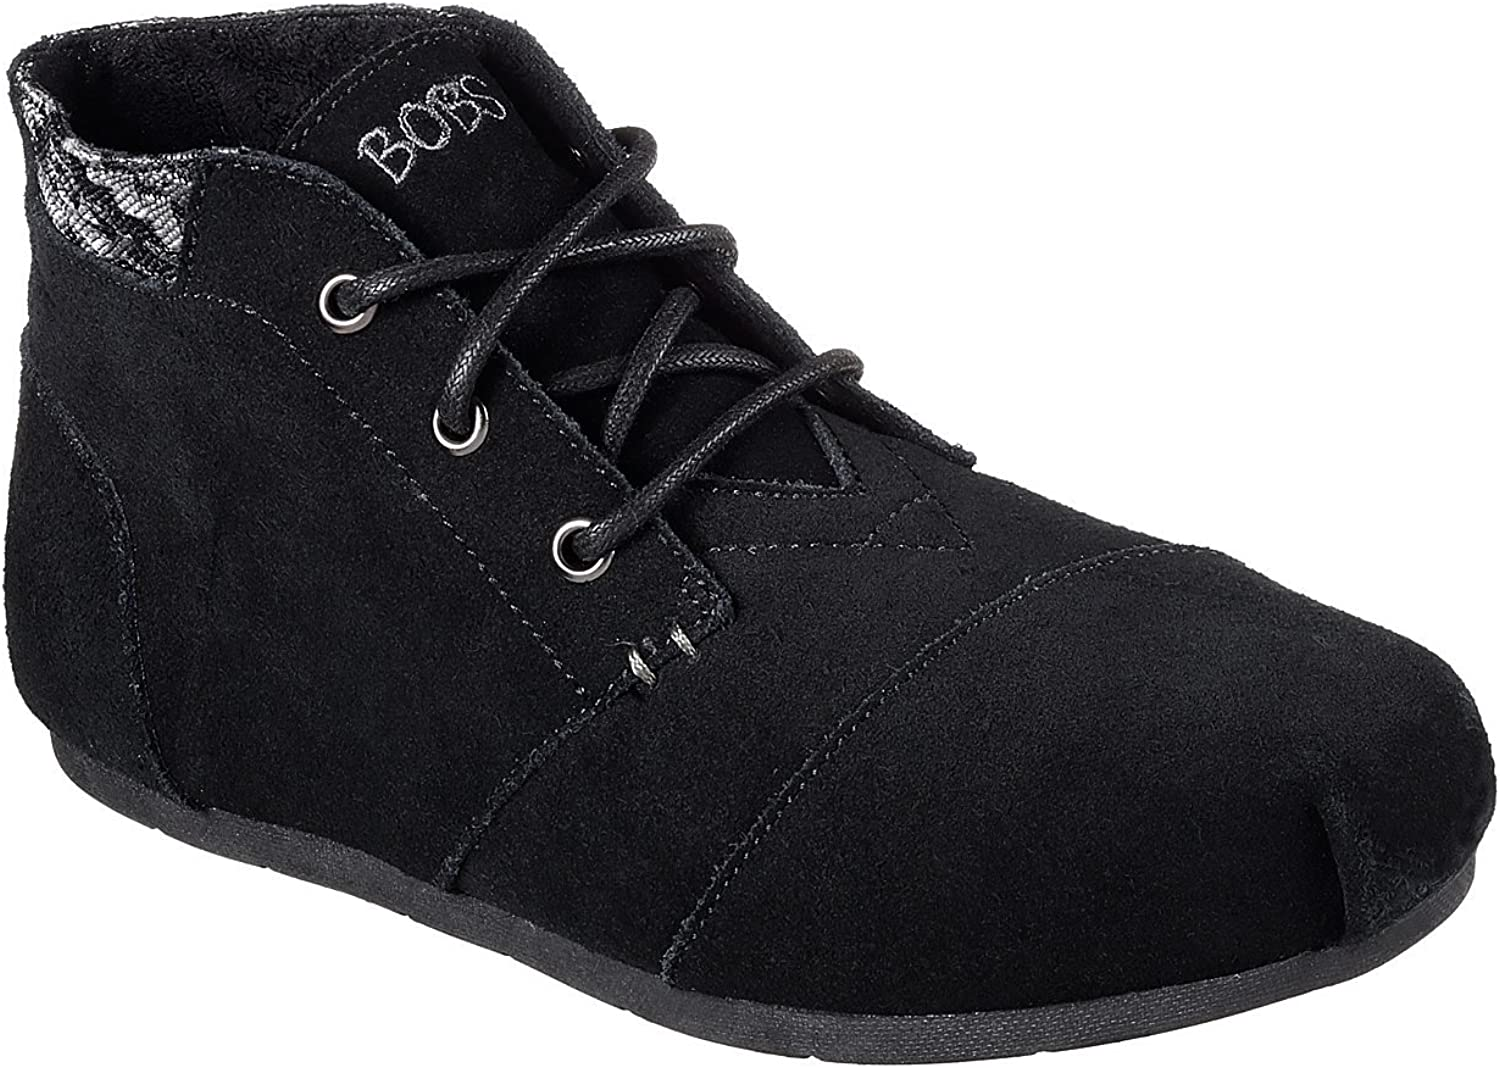 Skechers Luxe BOBS Rustic Sole Womens Lace up Ankle Boots